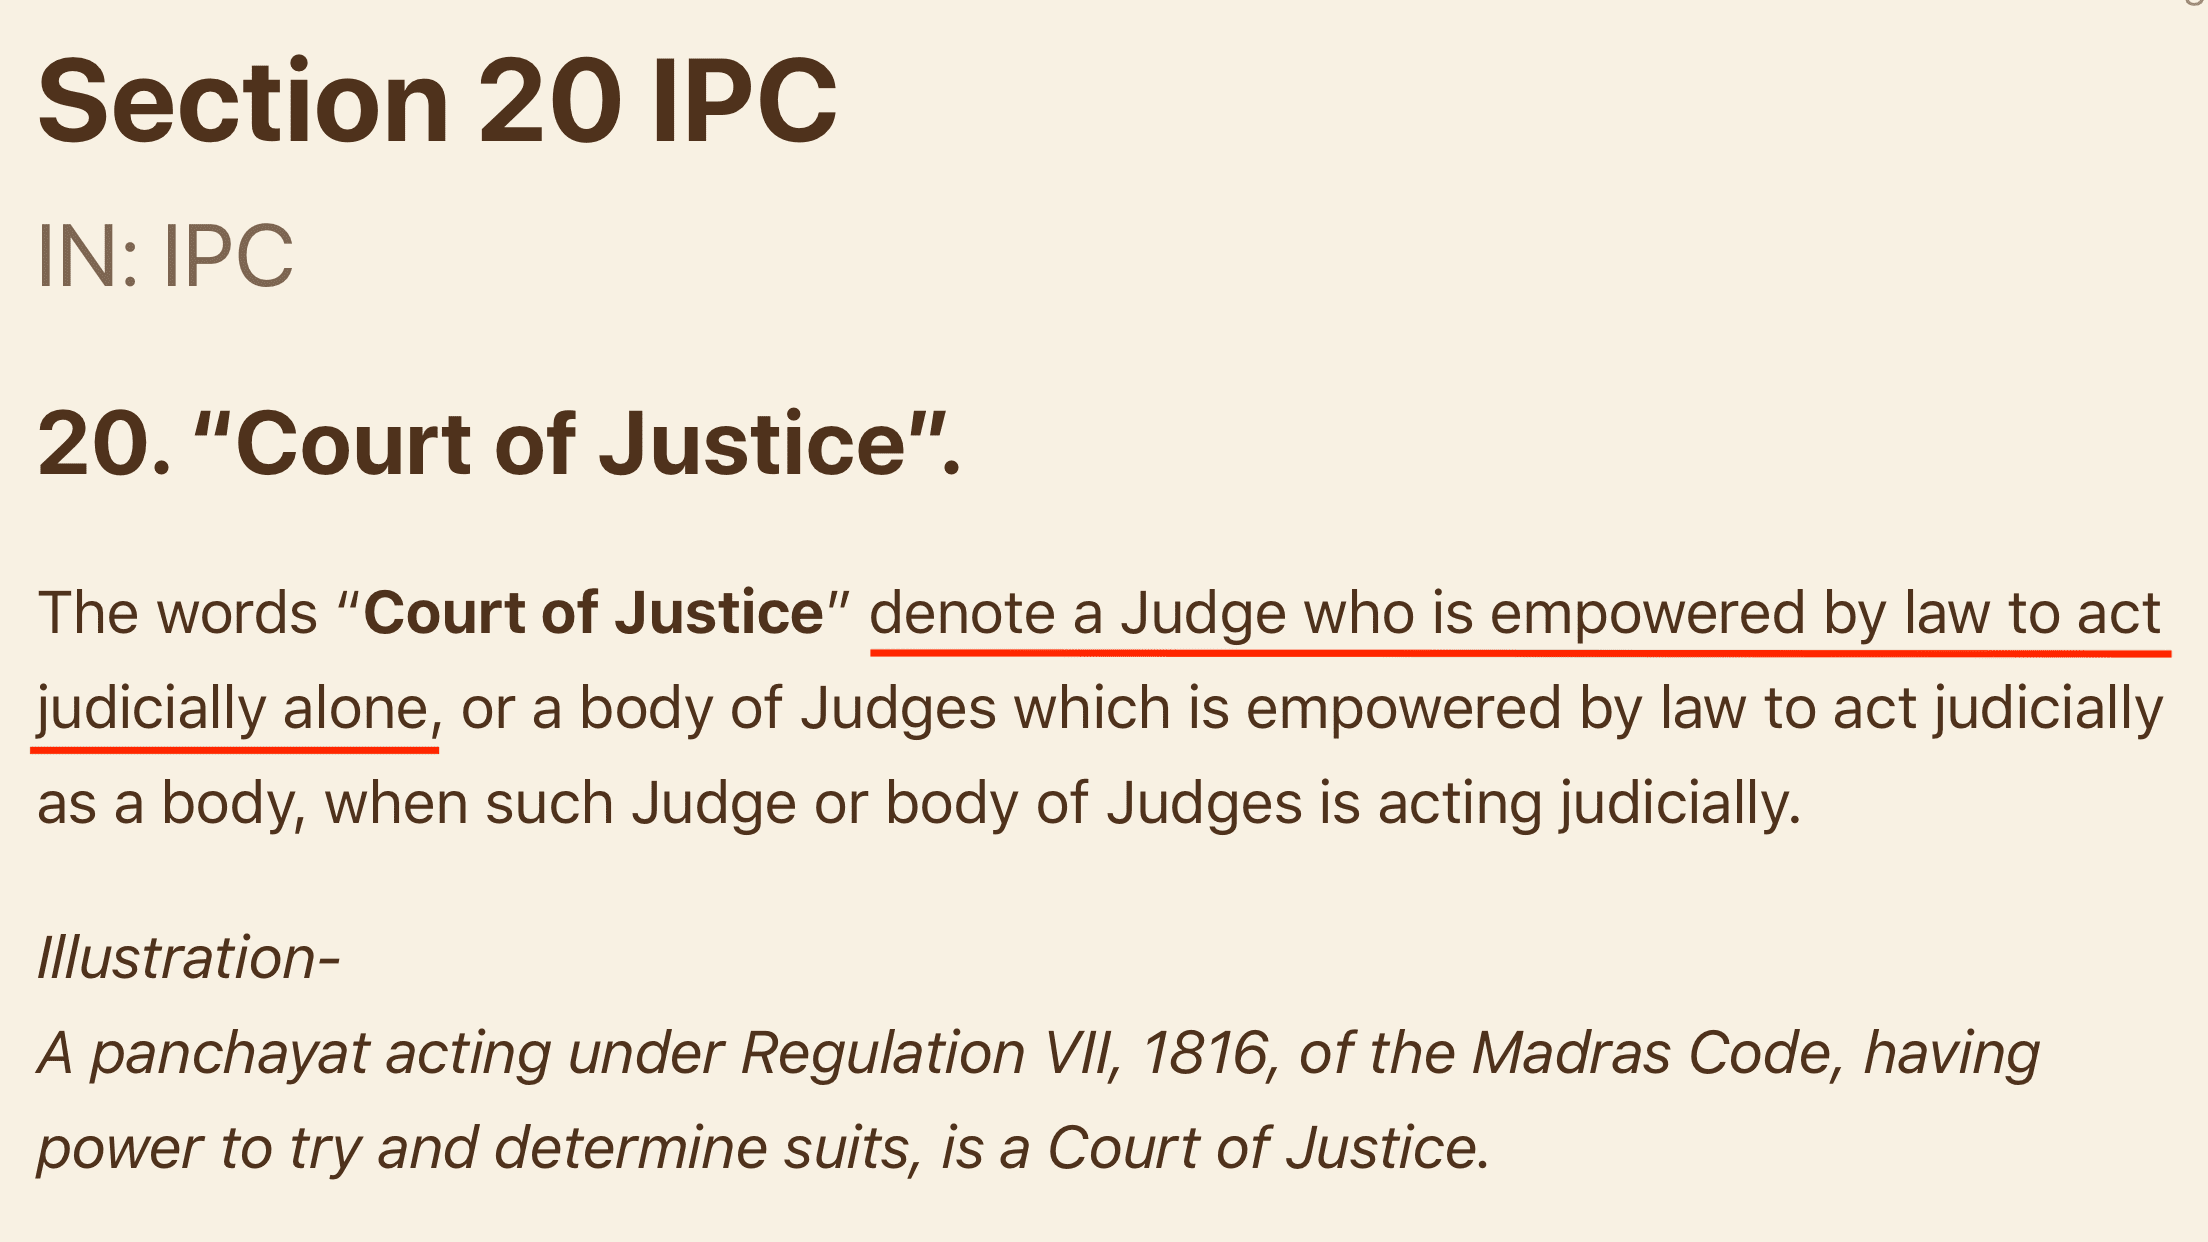 Section 20 of IPC